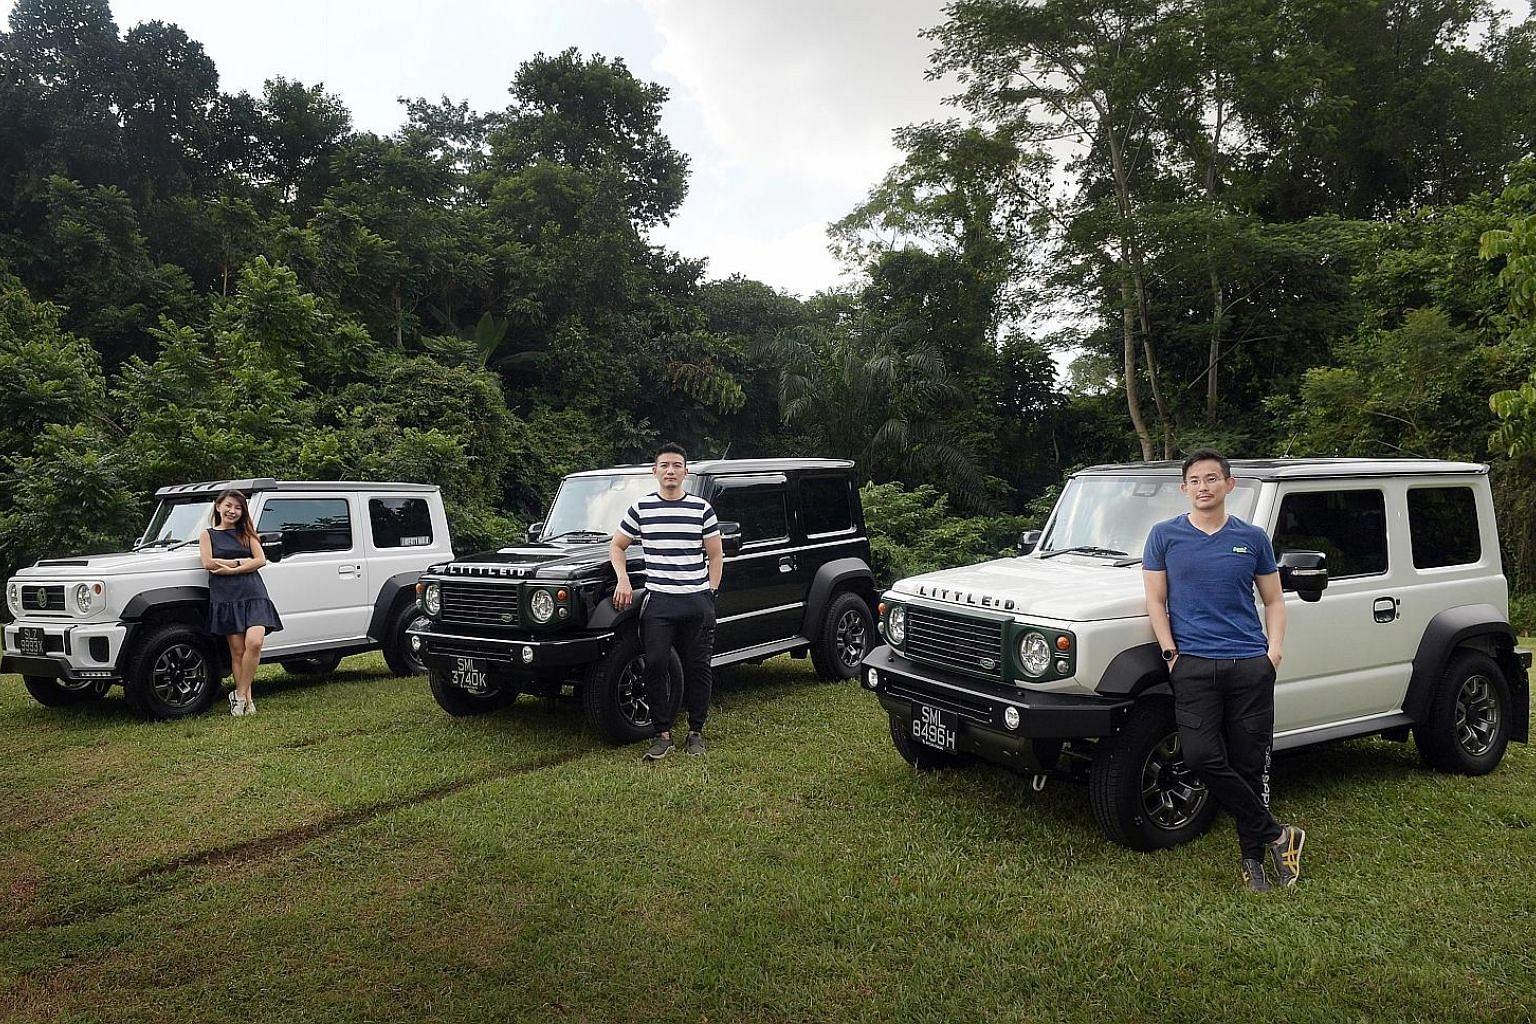 Mr Jerald Koh's (centre) enthusiasm for the Suzuki Jimny rubbed off on his friends, Ms Chloe Lim and Mr William Yeo, who bought their cars from the same parallel importer as he did.